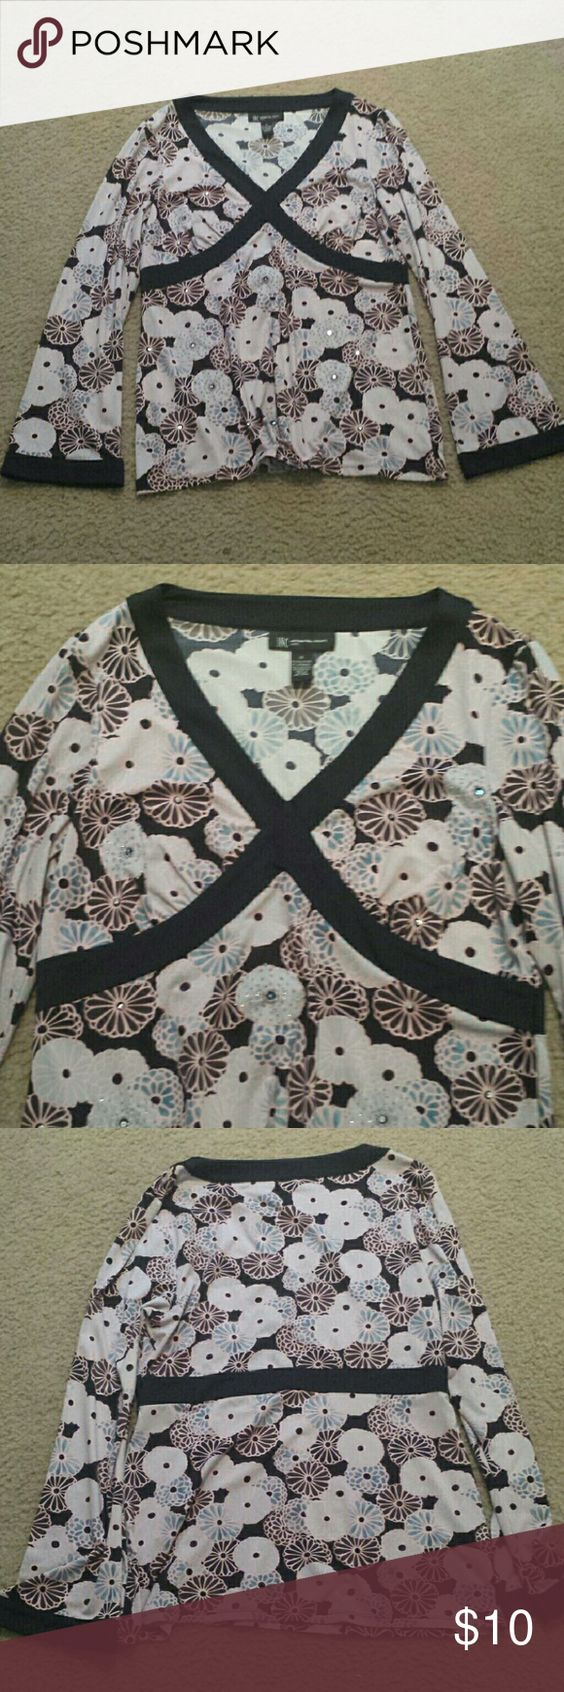 3 FOR $11 SALE INC International Concepts shirt In good used condition, smoke-free and pet-free home, no pulls, rips or stains, has beading on it, petite, INC International Concepts Tops